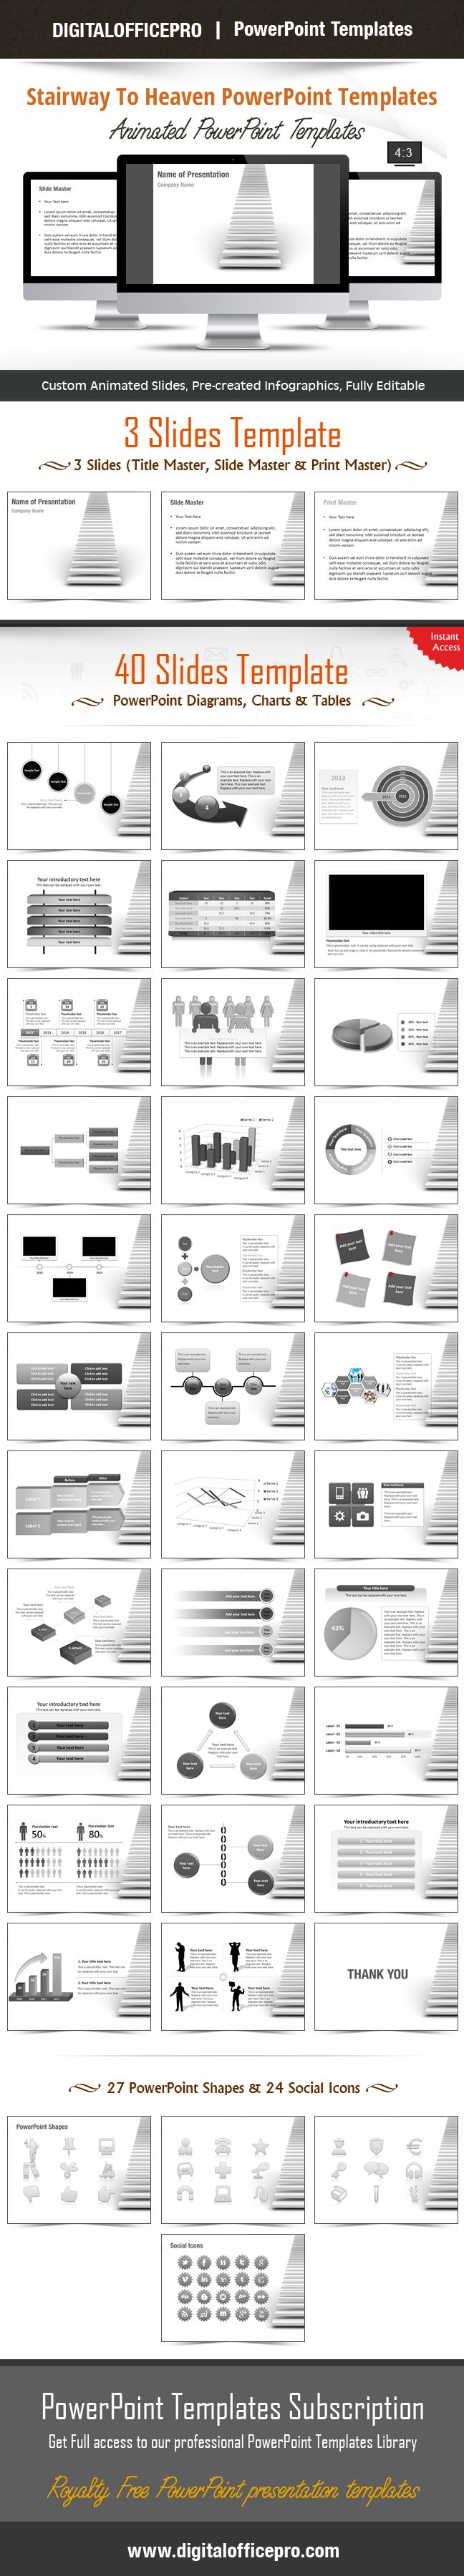 Impress and Engage your audience with Stairway To Heaven PowerPoint Template and Stairway To Heaven PowerPoint Backgrounds from DigitalOfficePro. Each template comes with a set of PowerPoint Diagrams, Charts & Shapes and are available for instant download.